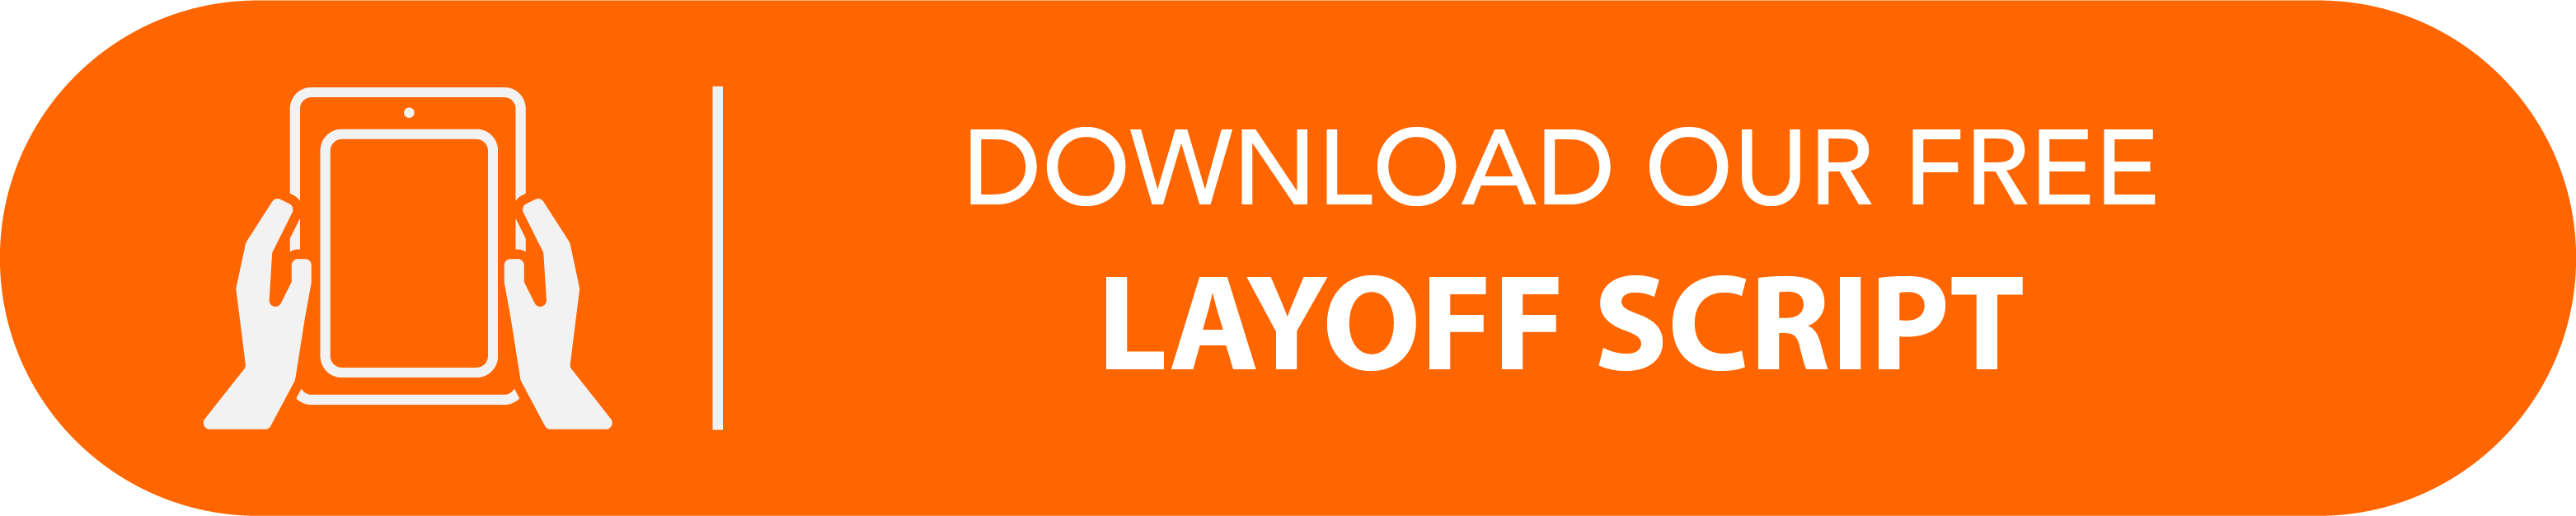 Download Our Layoff Script Here!